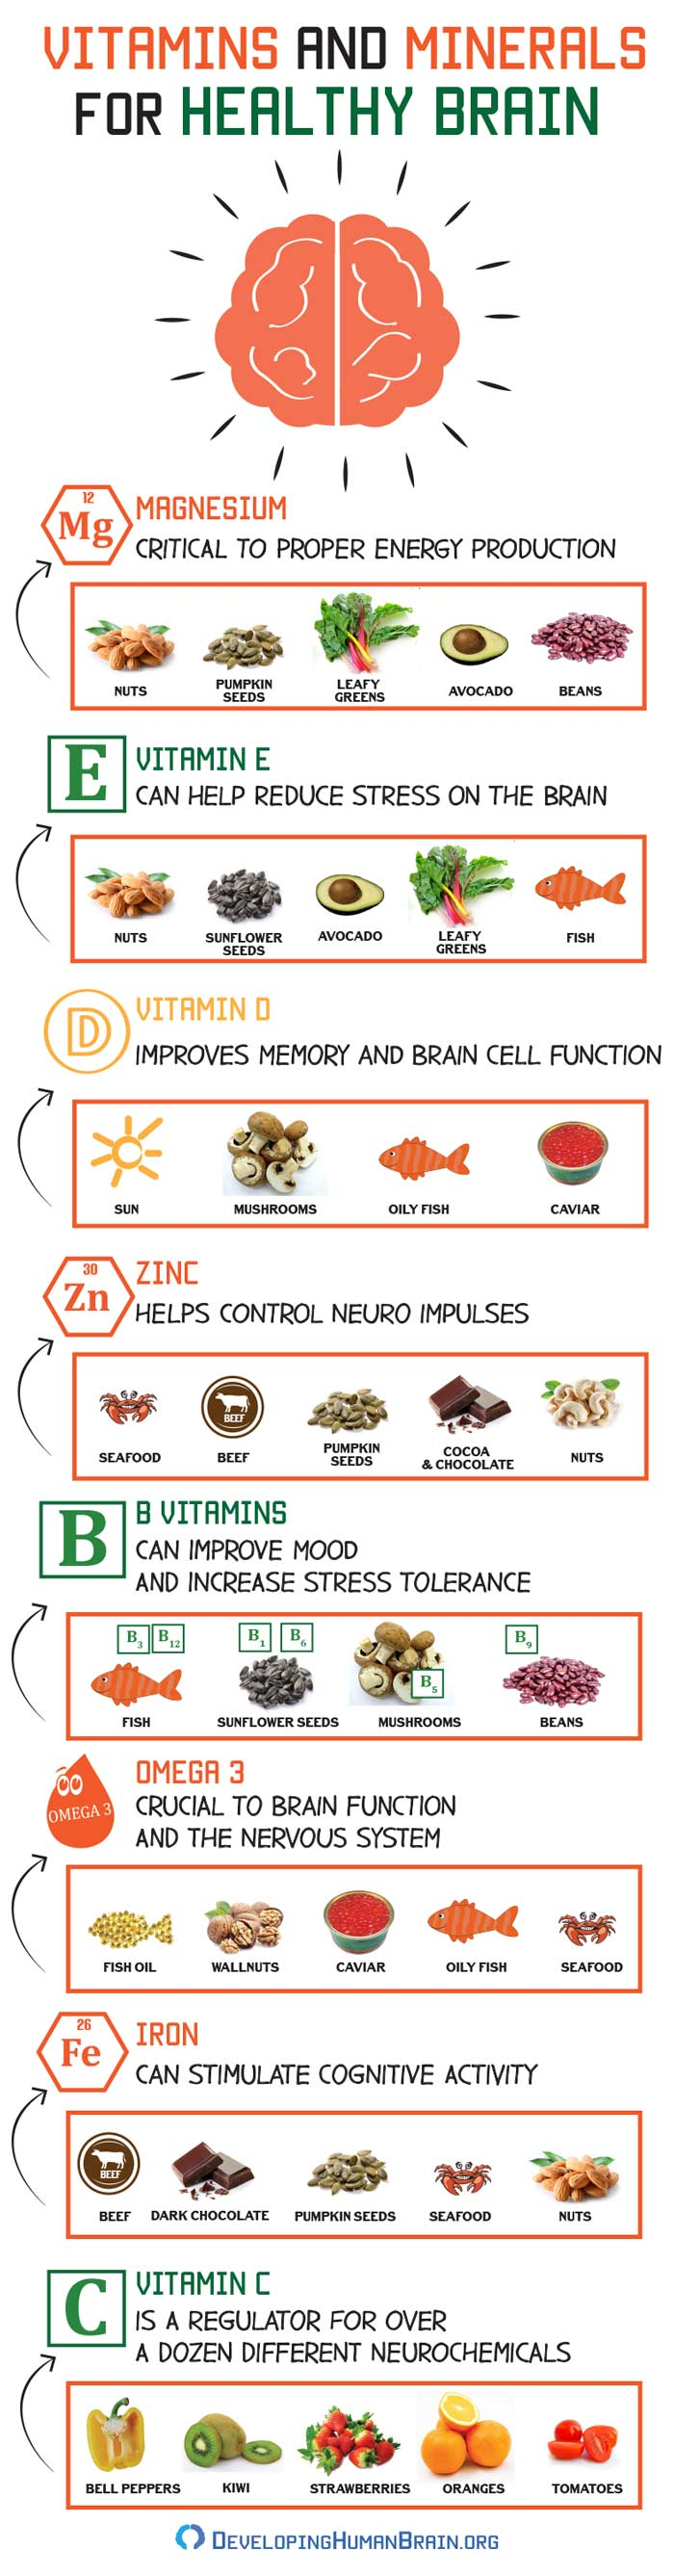 Vitamins-and-minerals-for-the-brain-Infographic